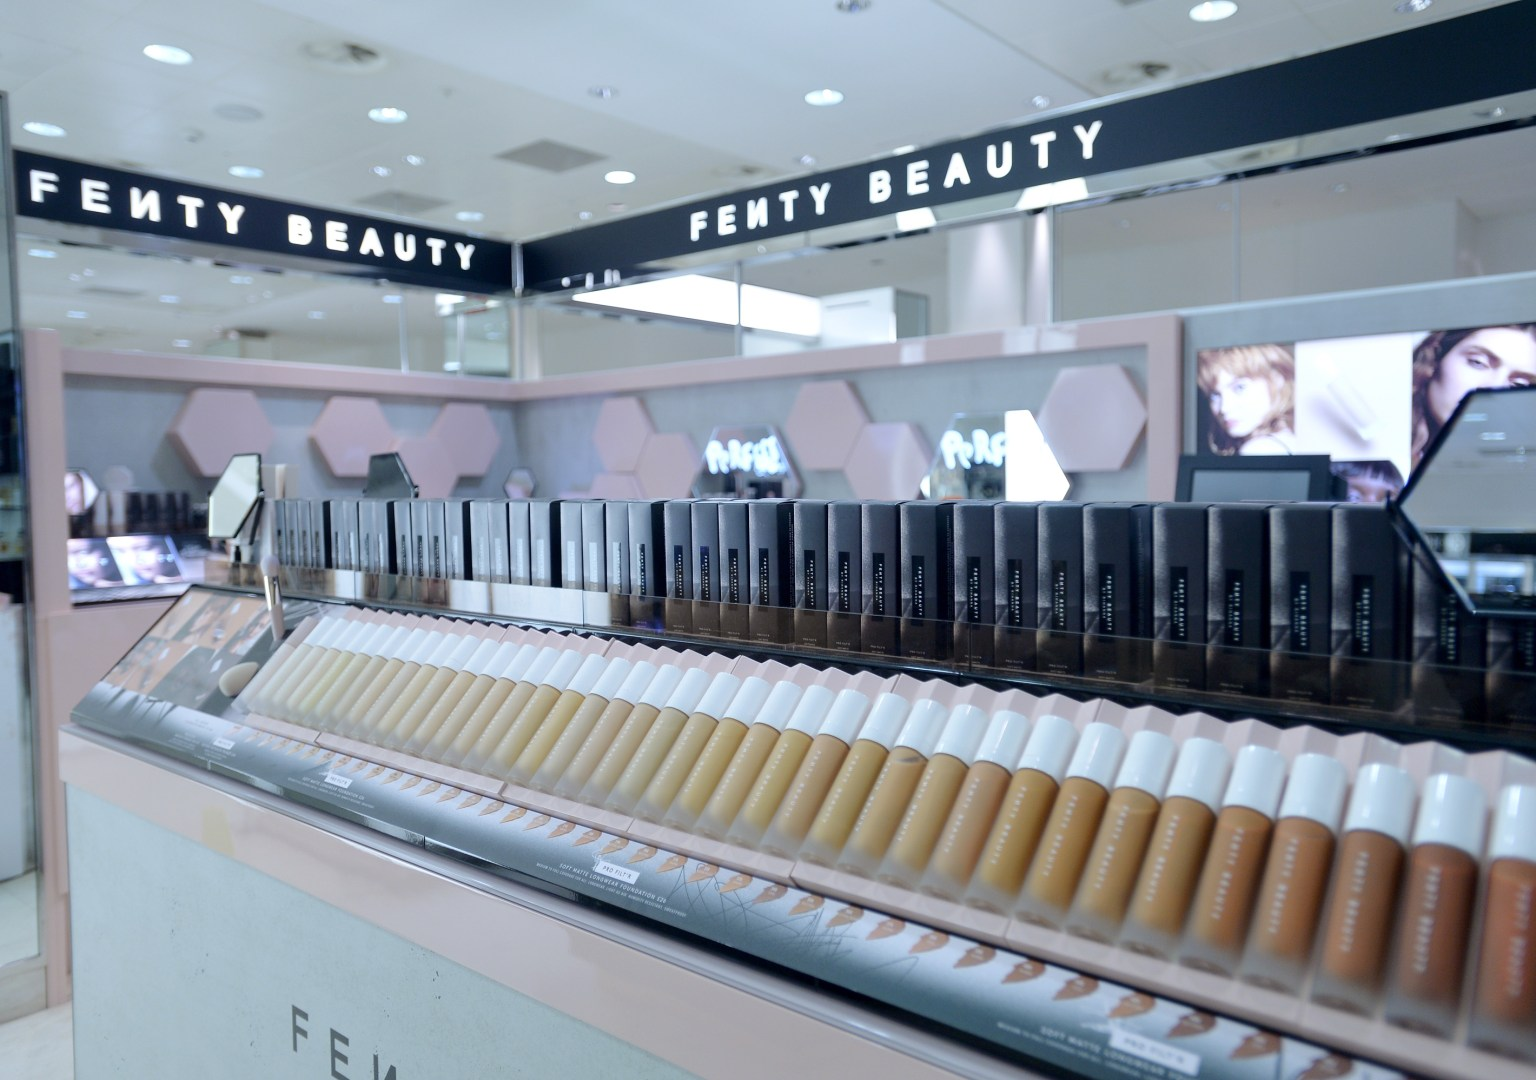 Fenty Beauty for Review Persons with Albinism